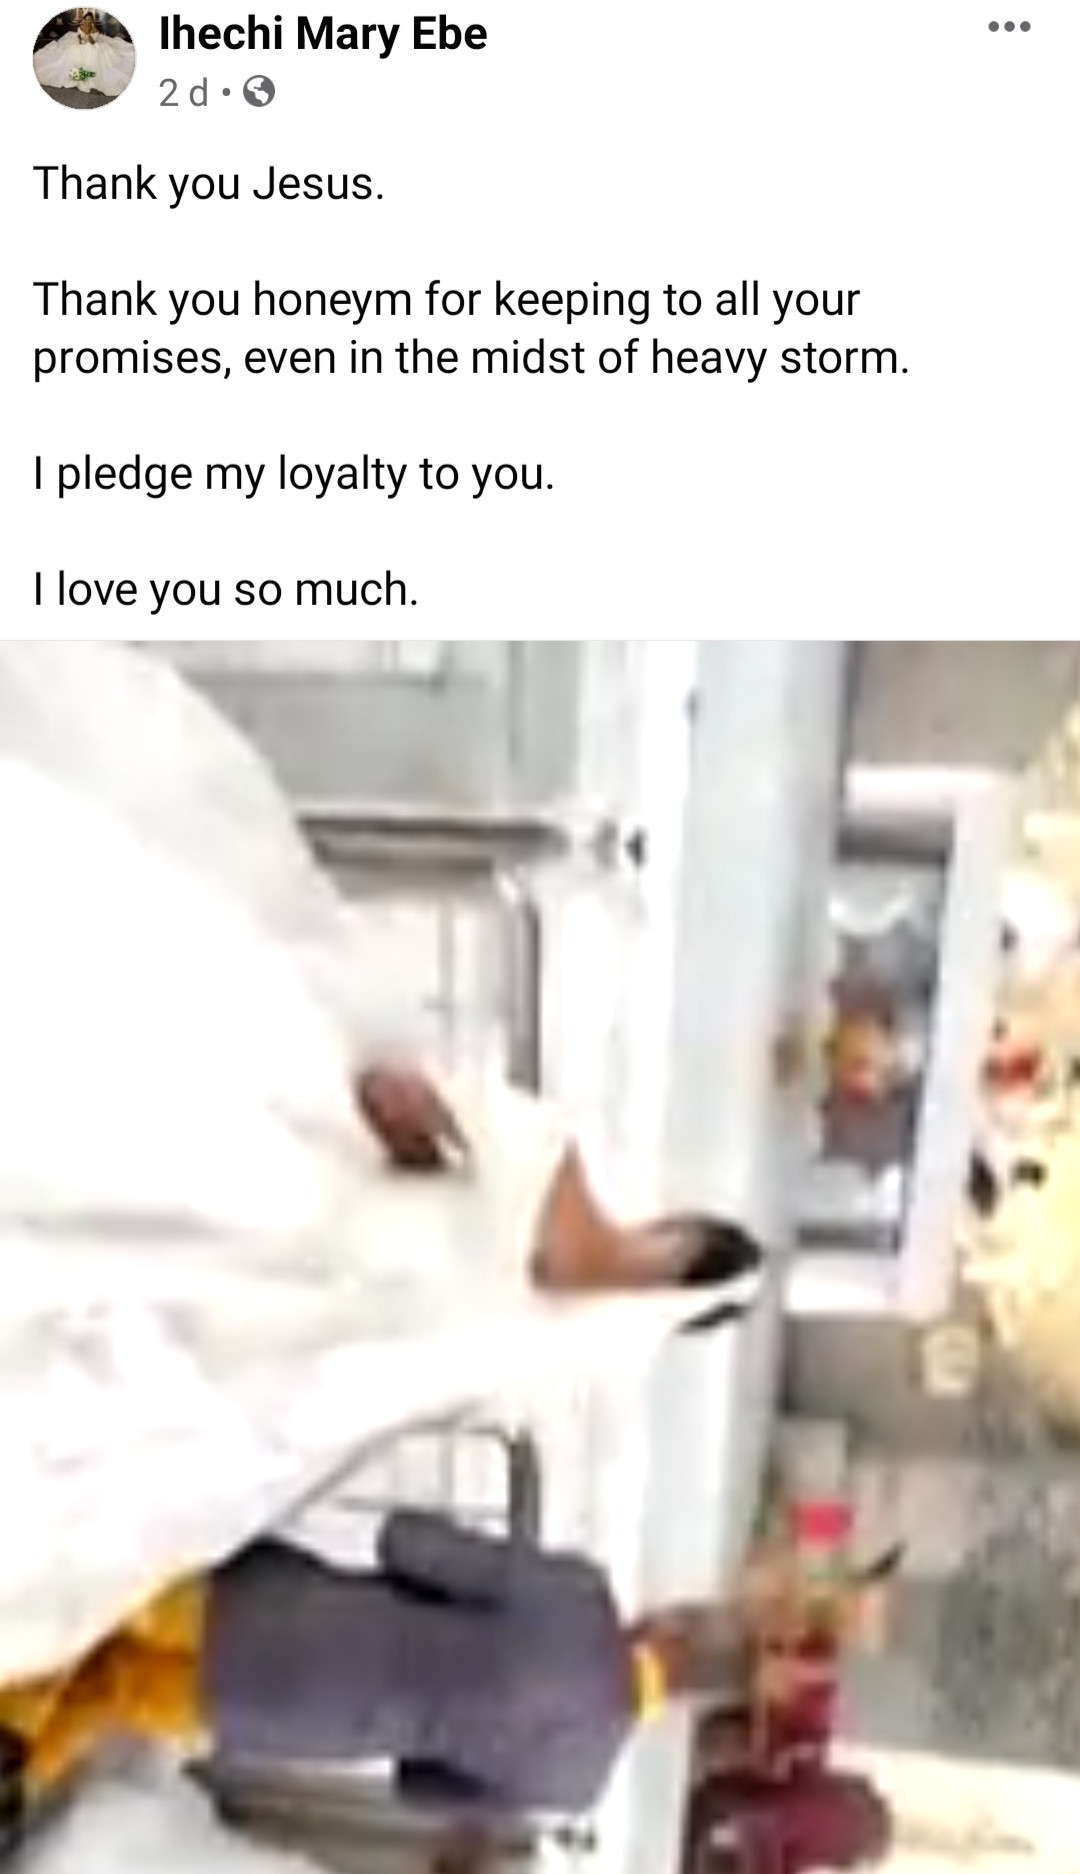 Newlywed virgin shares photos of blood-stained bedsheet as she calls out her exes who abandoned her for refusing to have sex with them